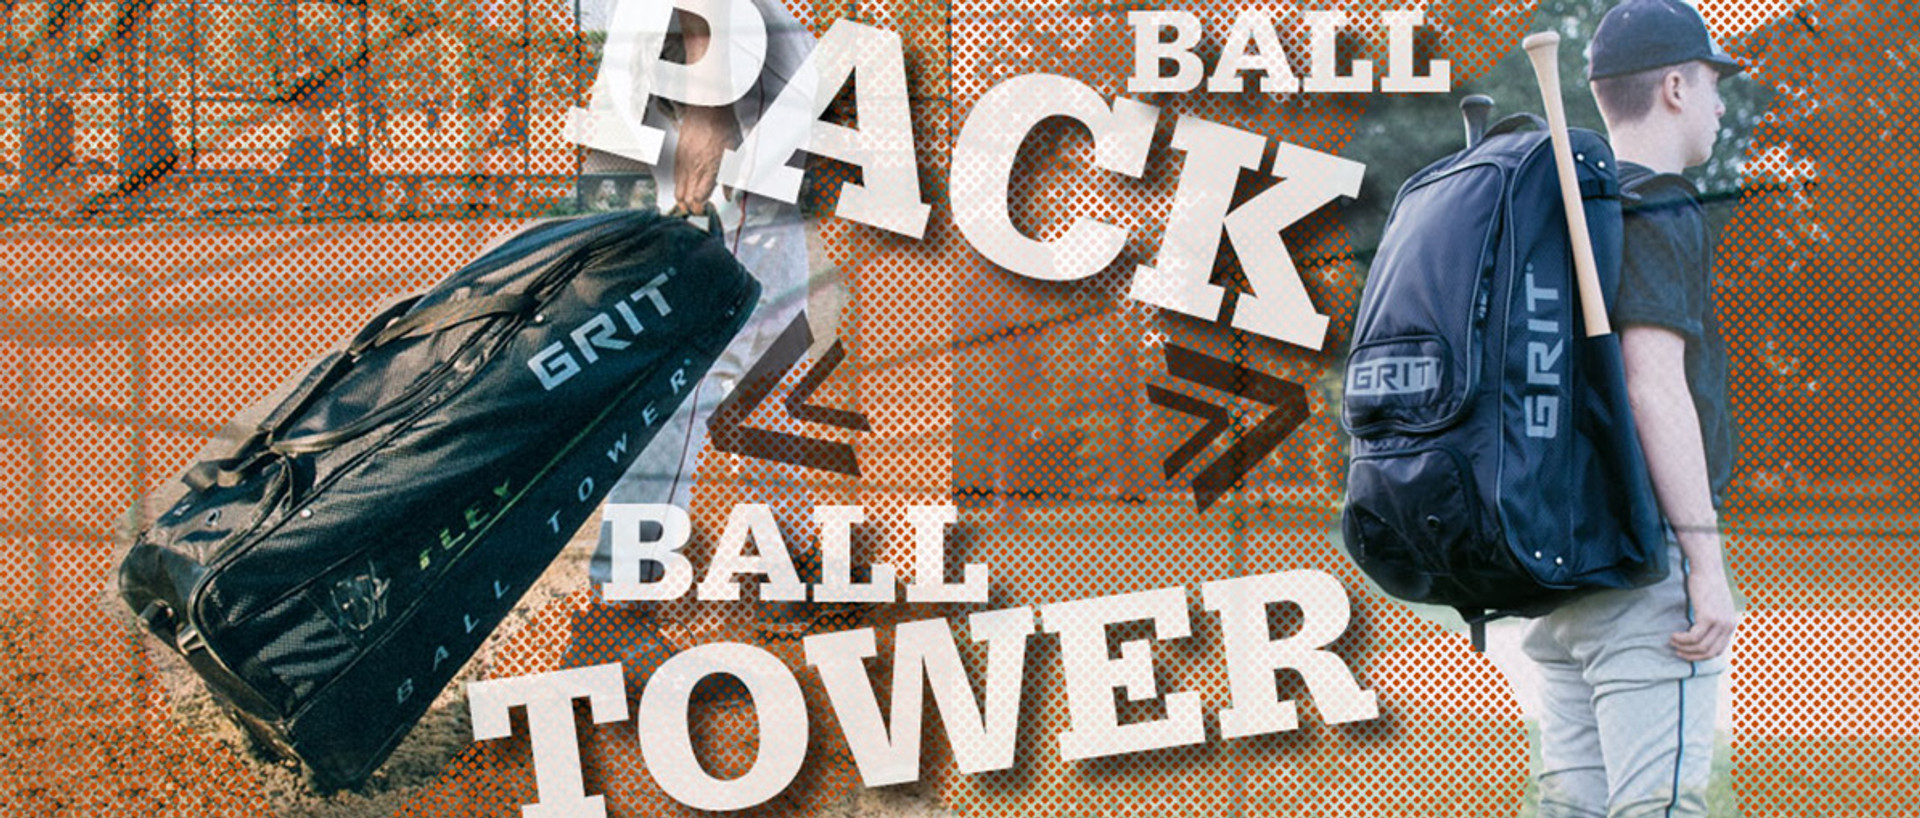 Grit Ball Tower being rolled on ground and ball pack carried on player's back